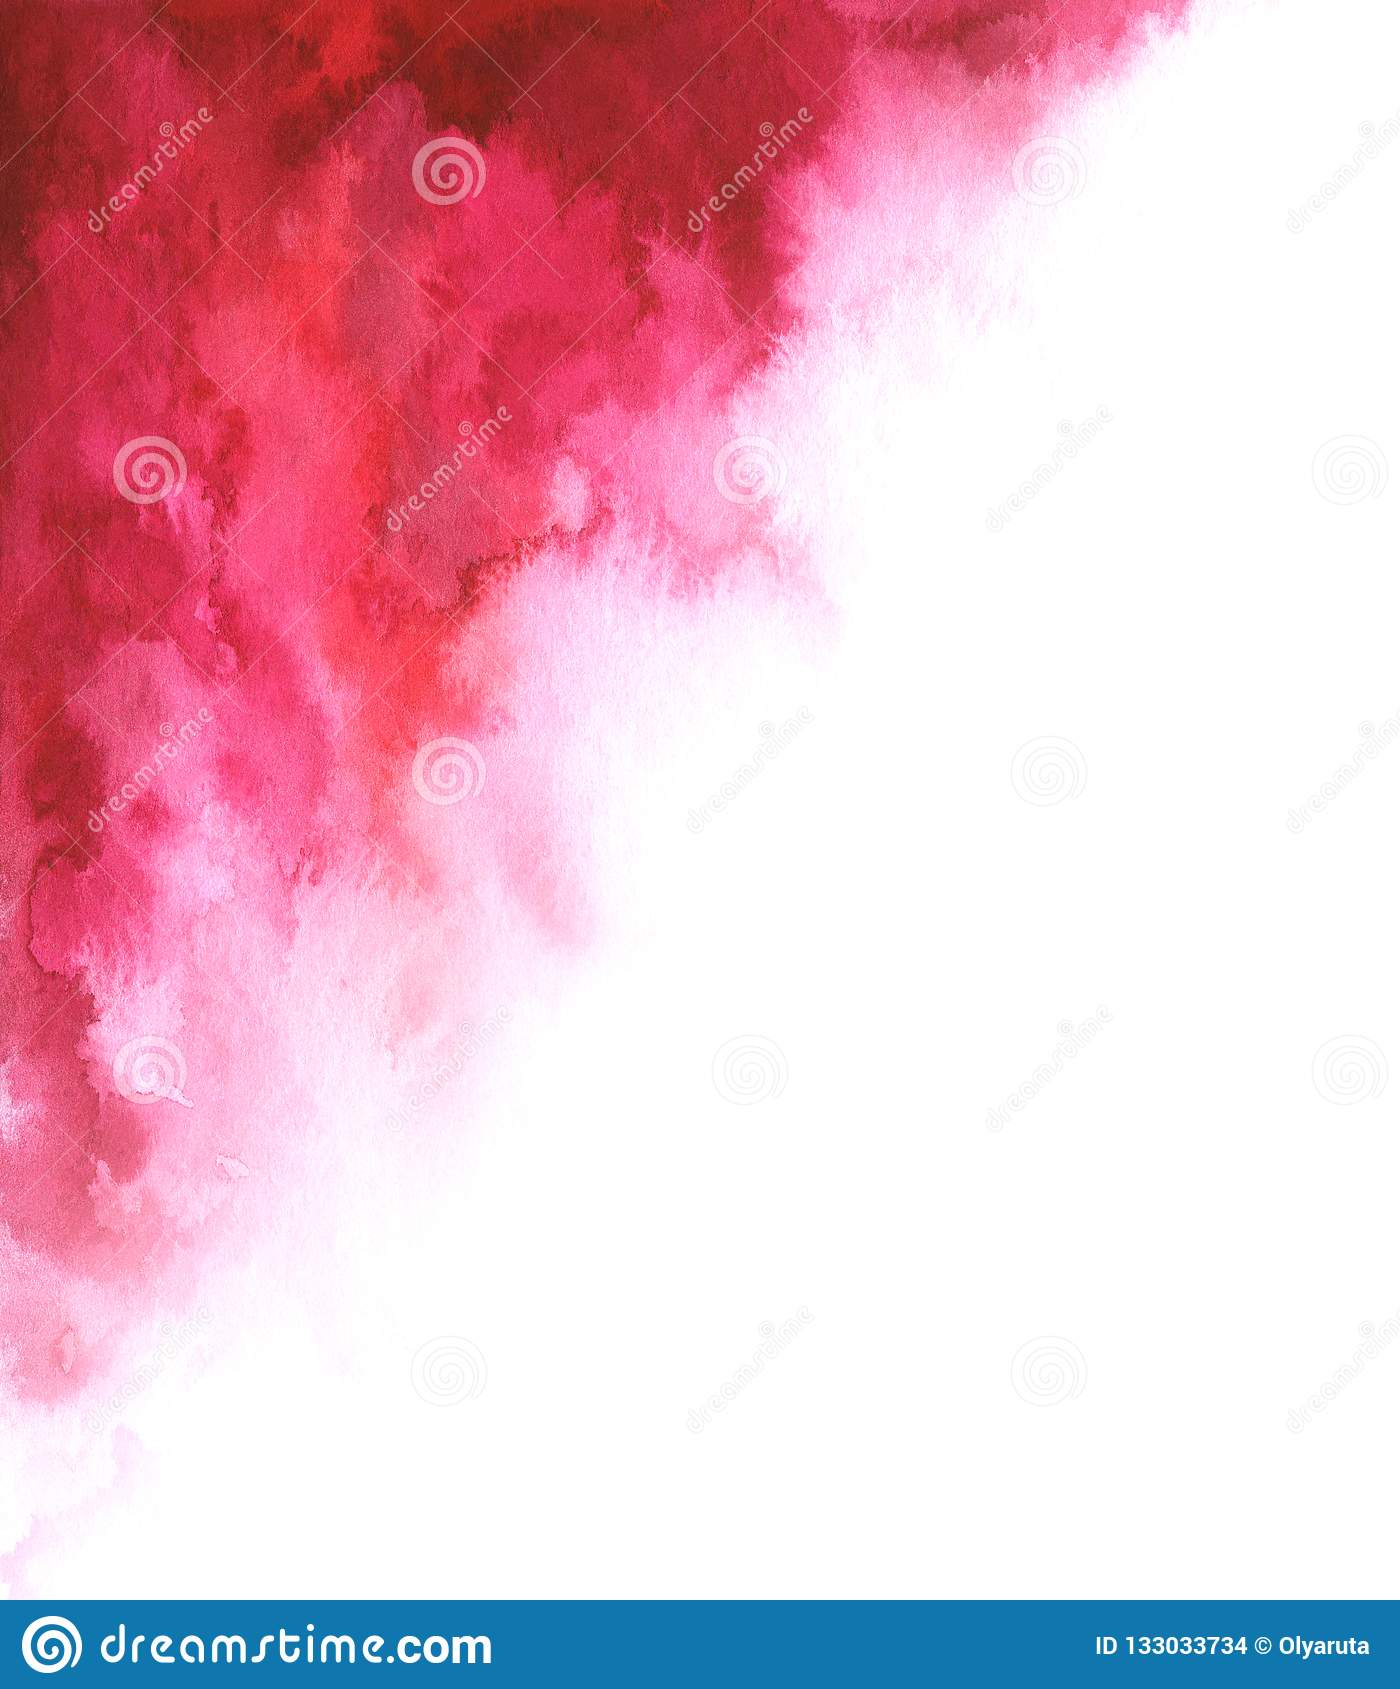 Watercolor Abstract Red And White Gradient Background For Your Design Stock Illustration Illustration Of Background Texture 133033734